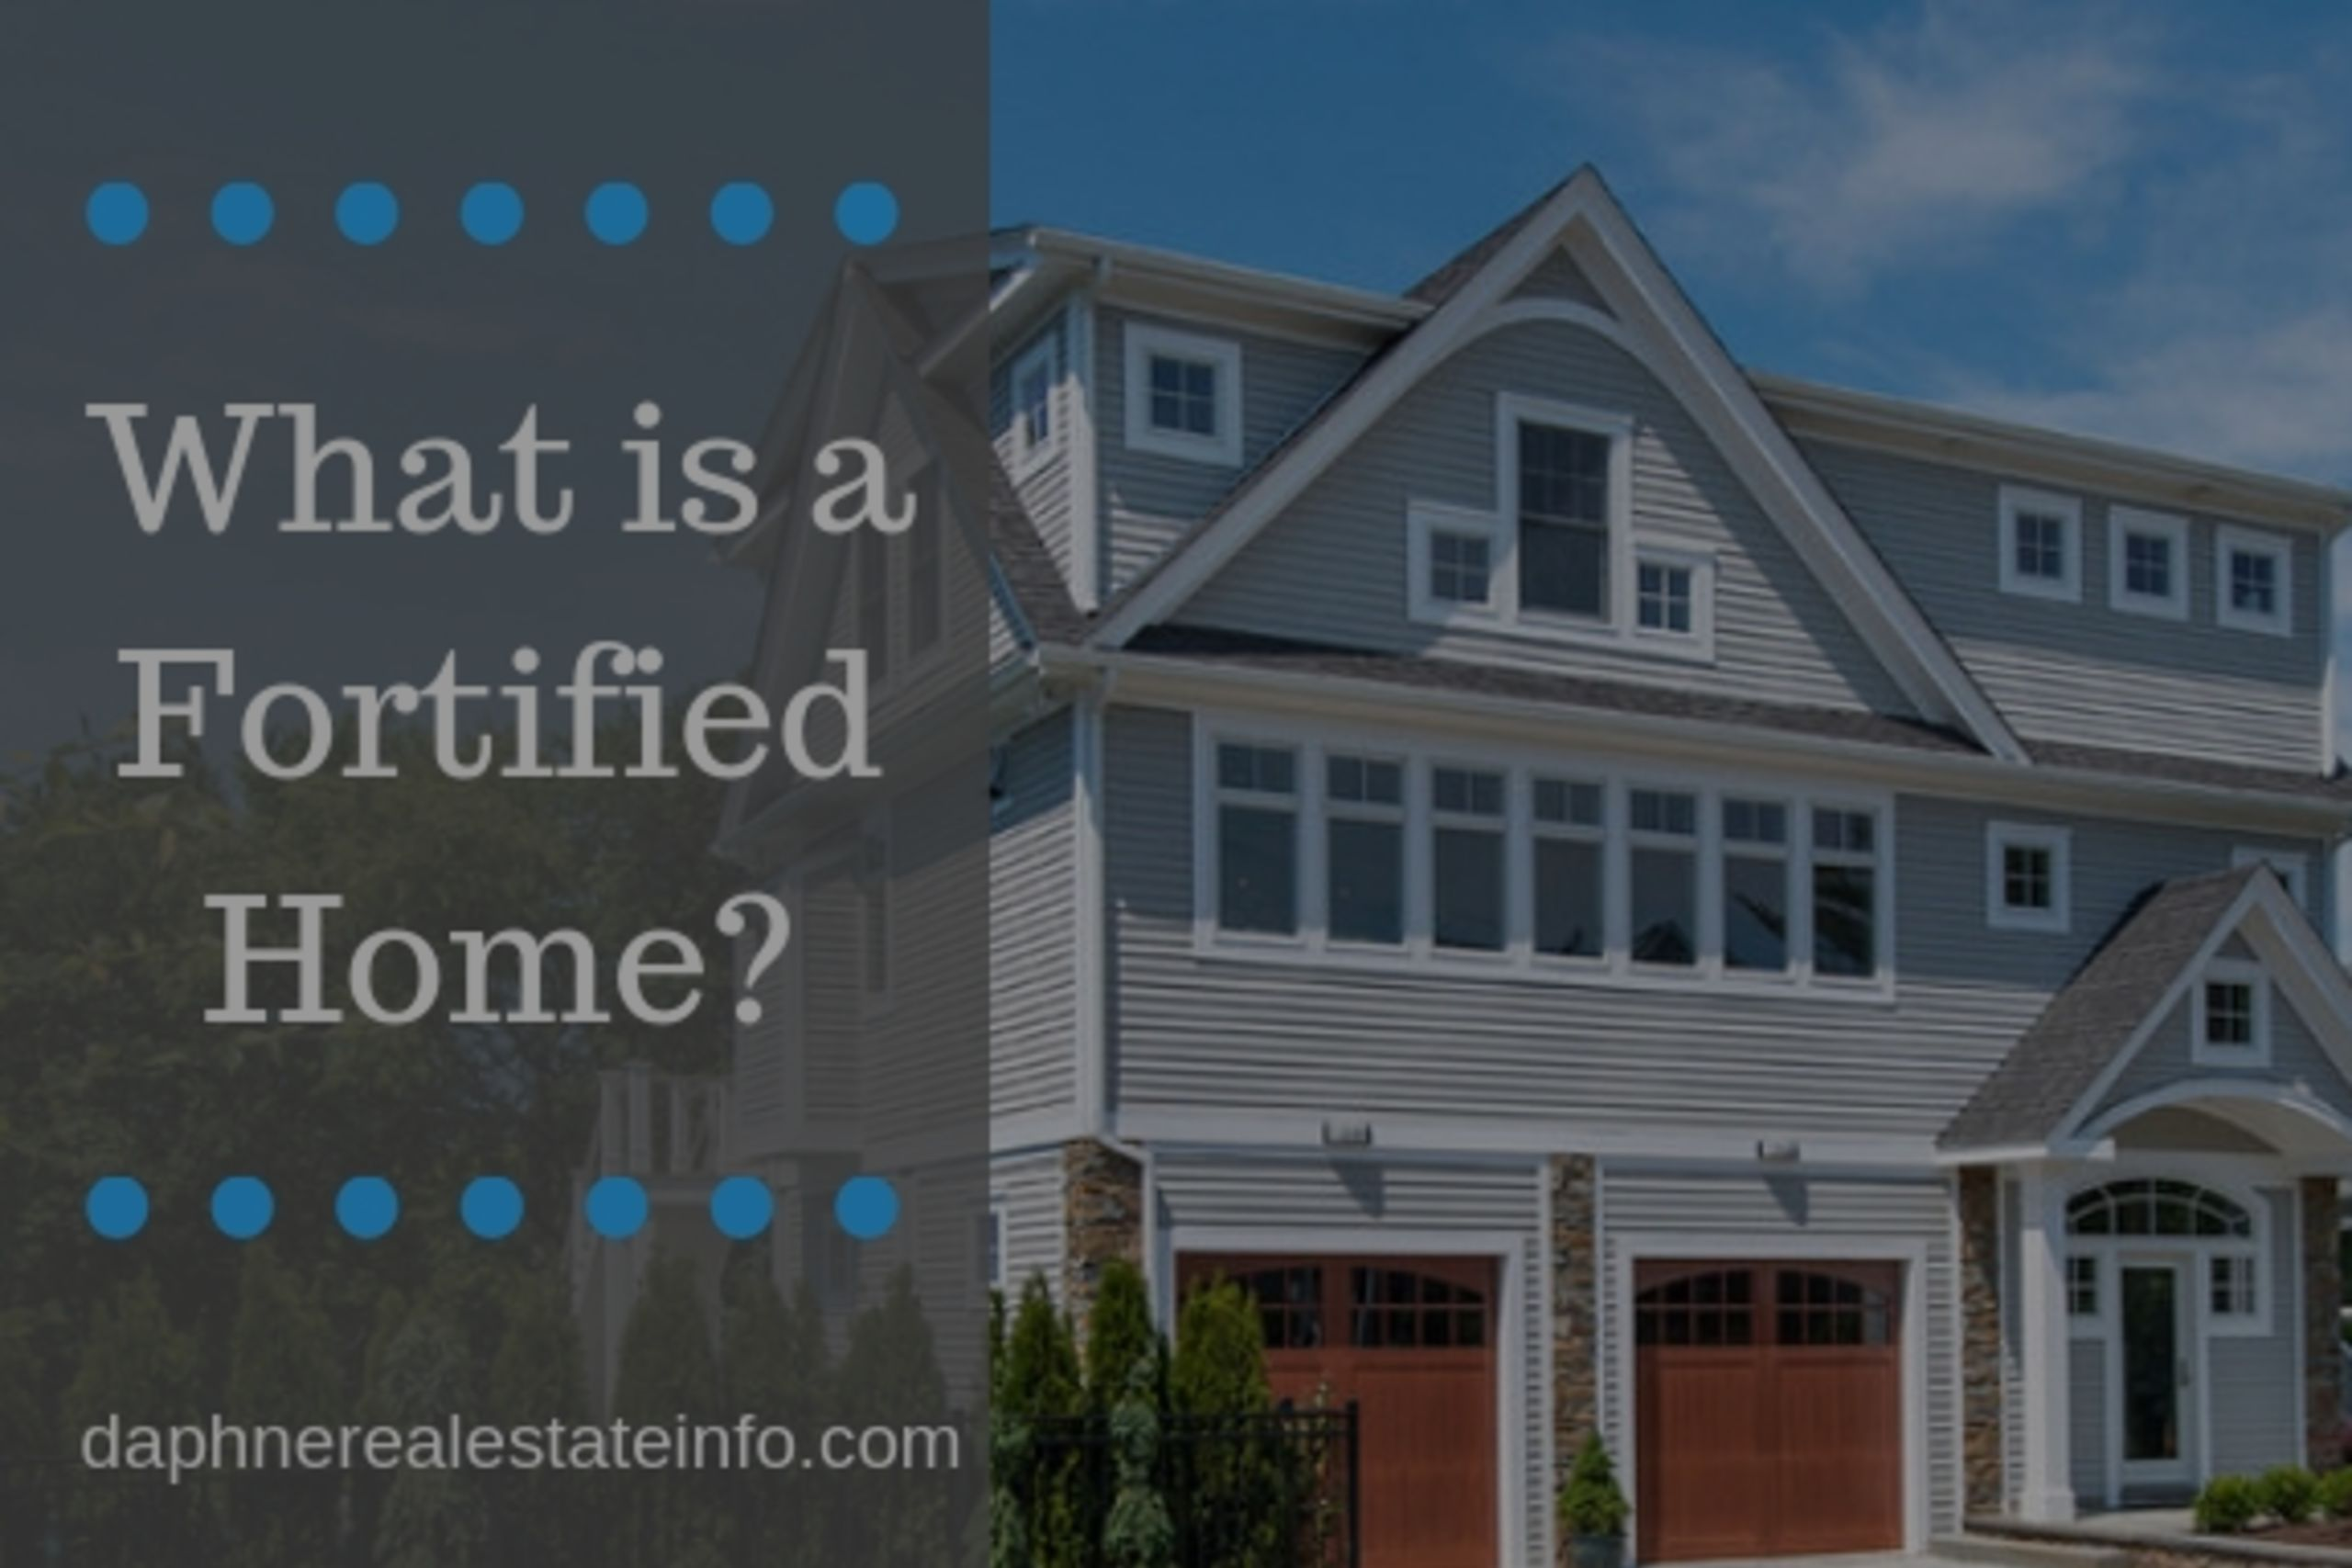 What is a Fortified Home?